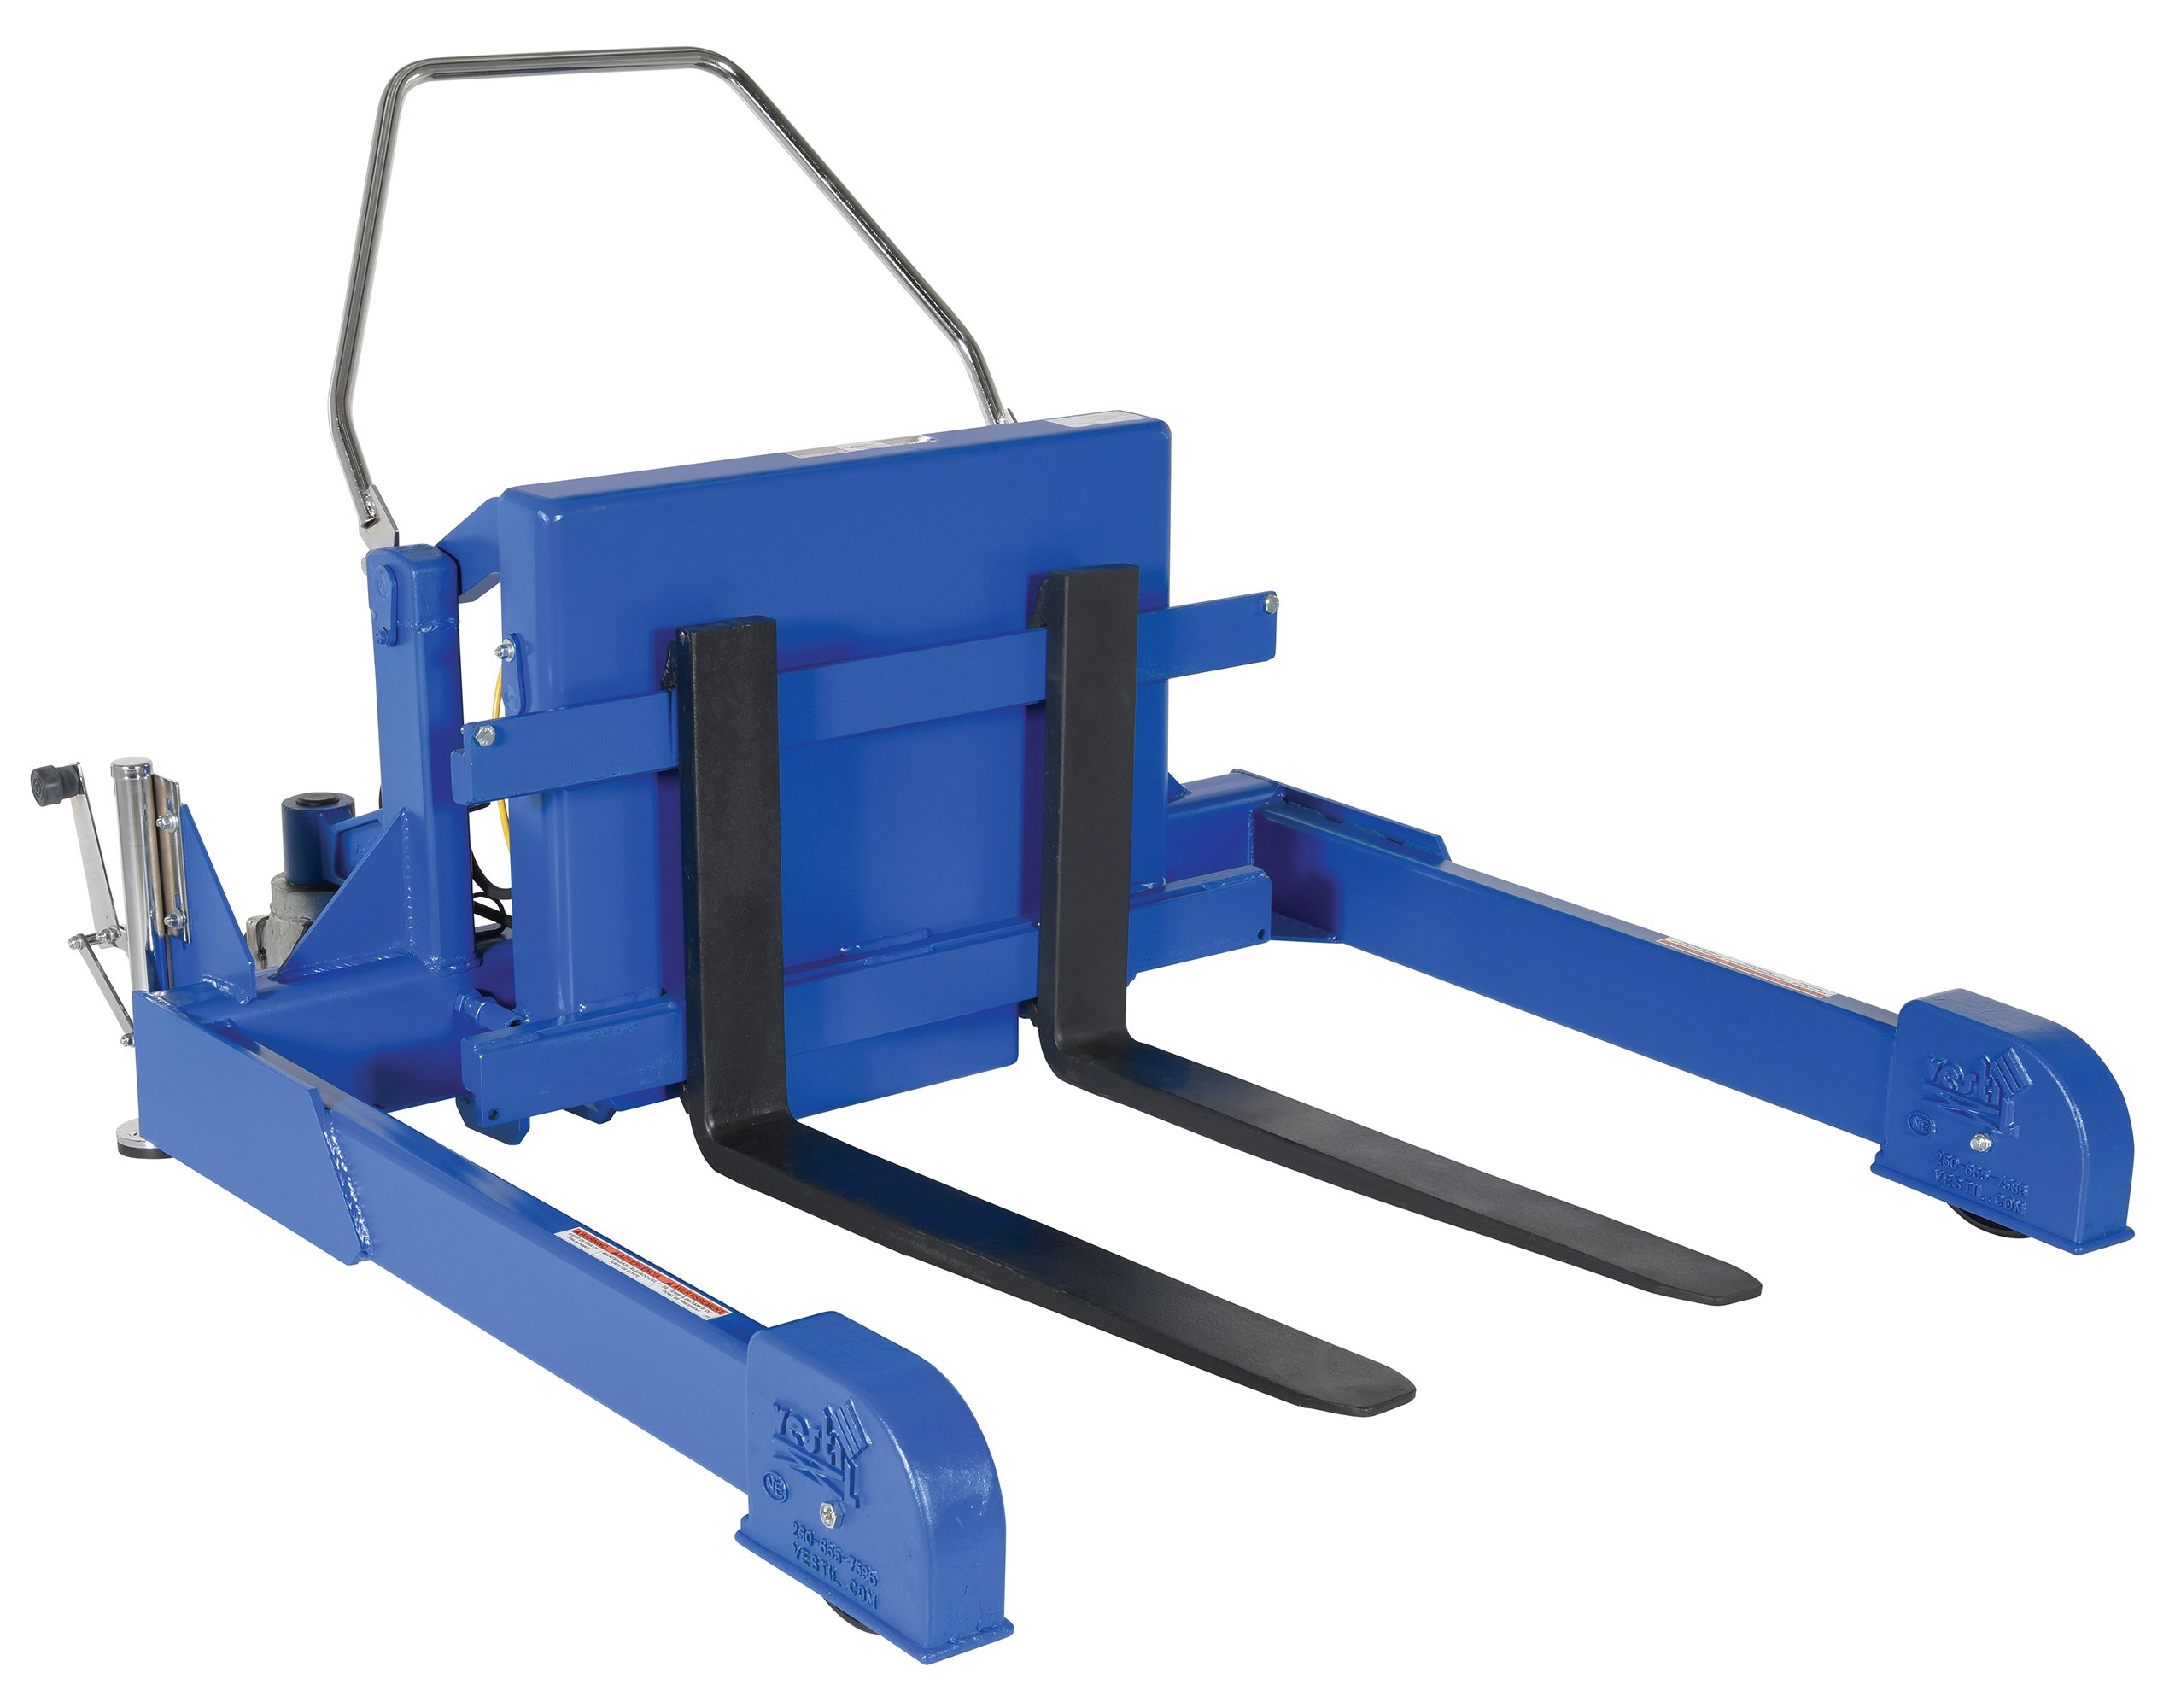 Vestil TMS-40-DC DC Power Tilt Master Straddle, Overall W x L x H (in.) 57-1/4 x 72-13/16 x 29-1/4, Folding Handle Length (in.) 20, 4'' Fork Width, 4000 lbs Capacity